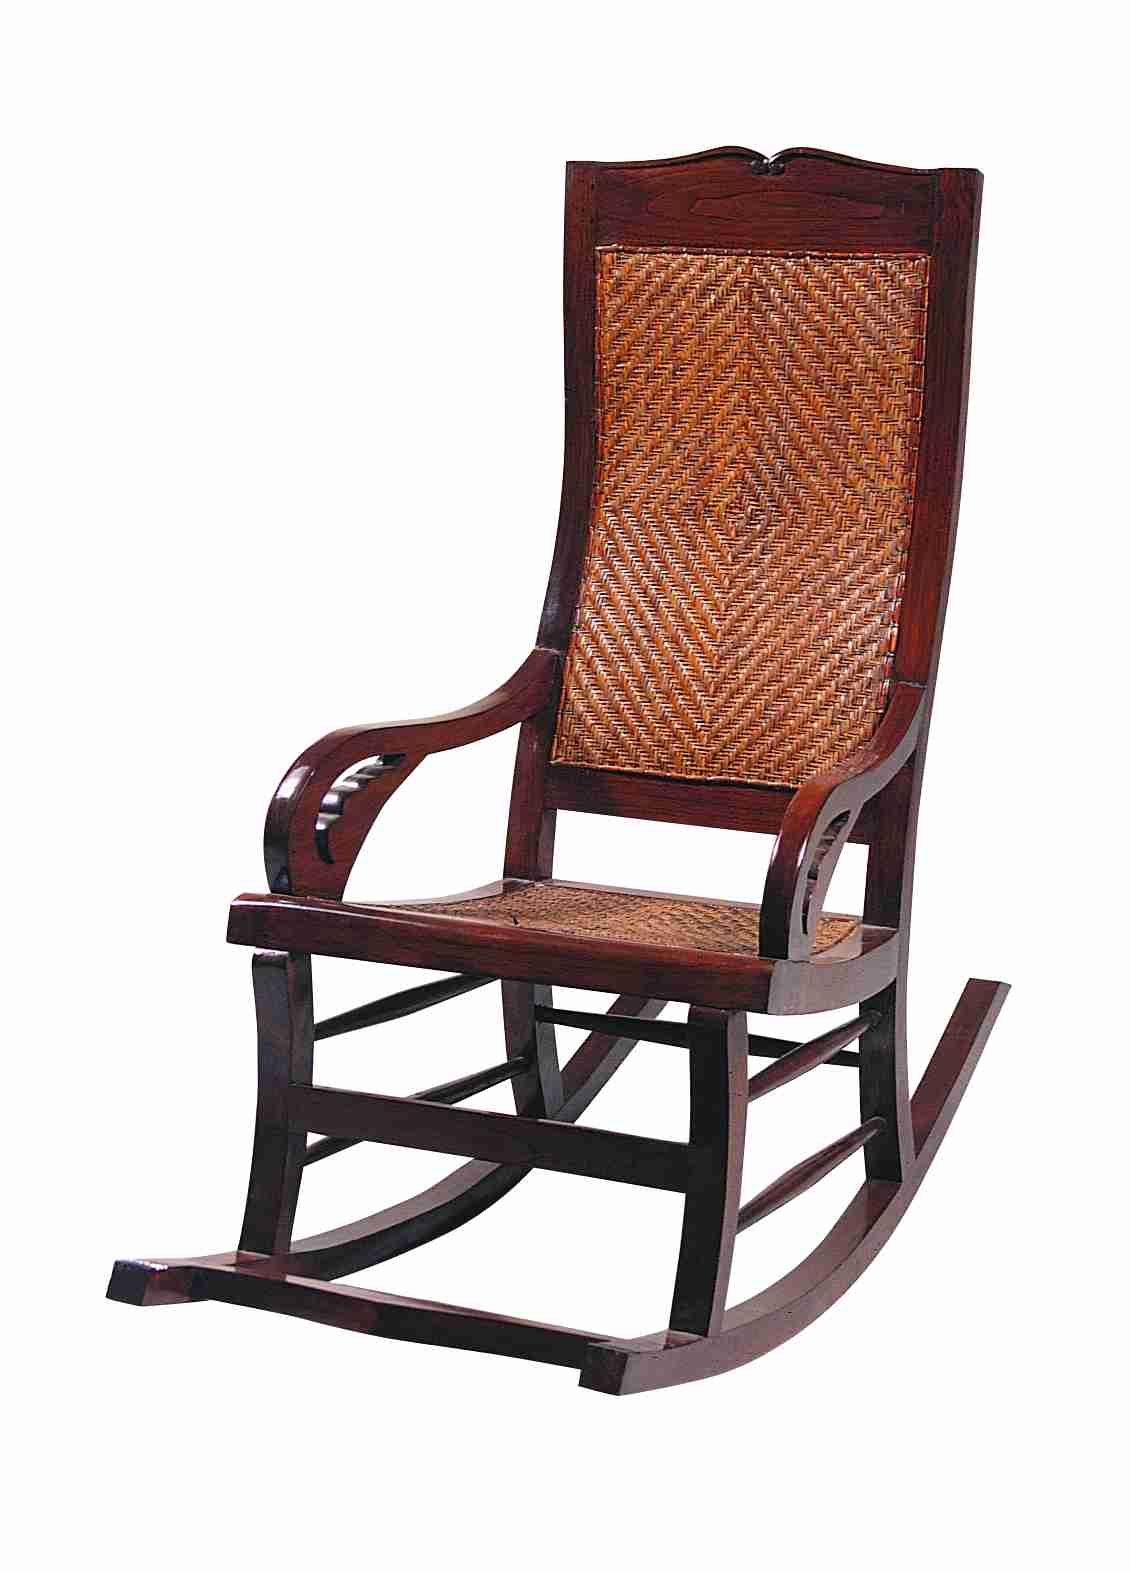 Chaise Rocking Chair Chaise Rocking Chair Ref 261